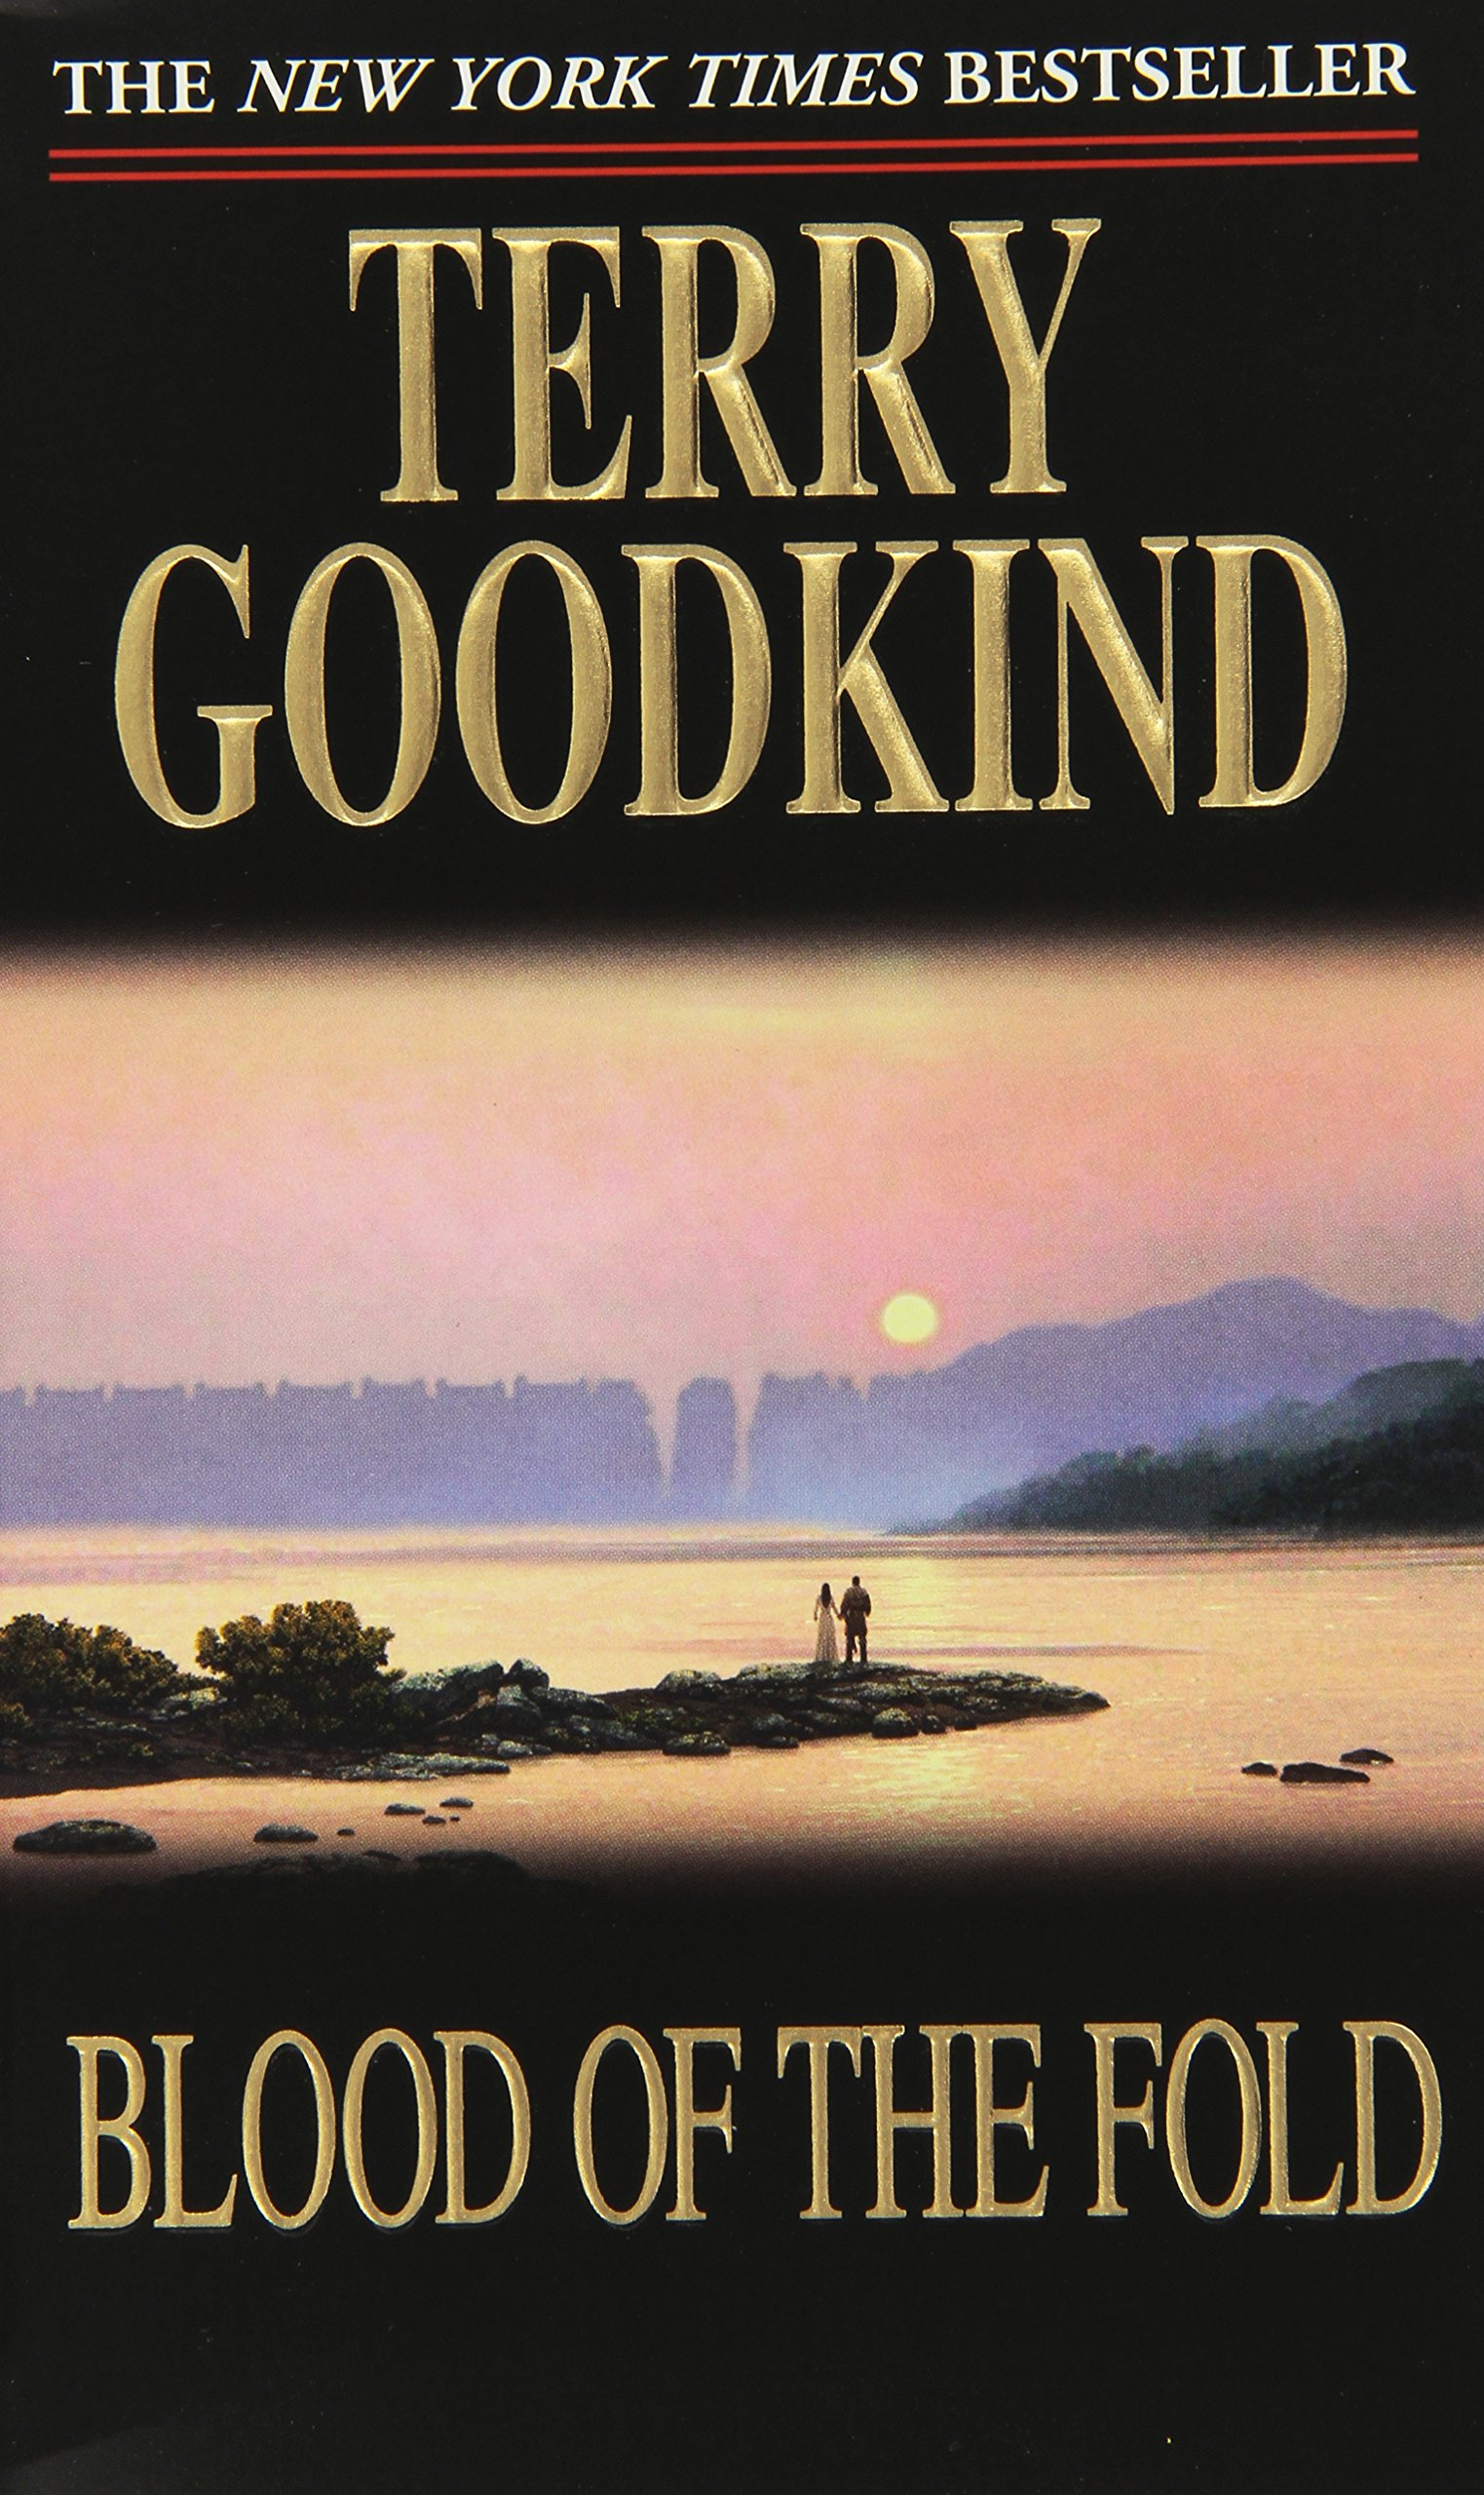 Terry Goodkind: Love and Hate Under One Cover 97